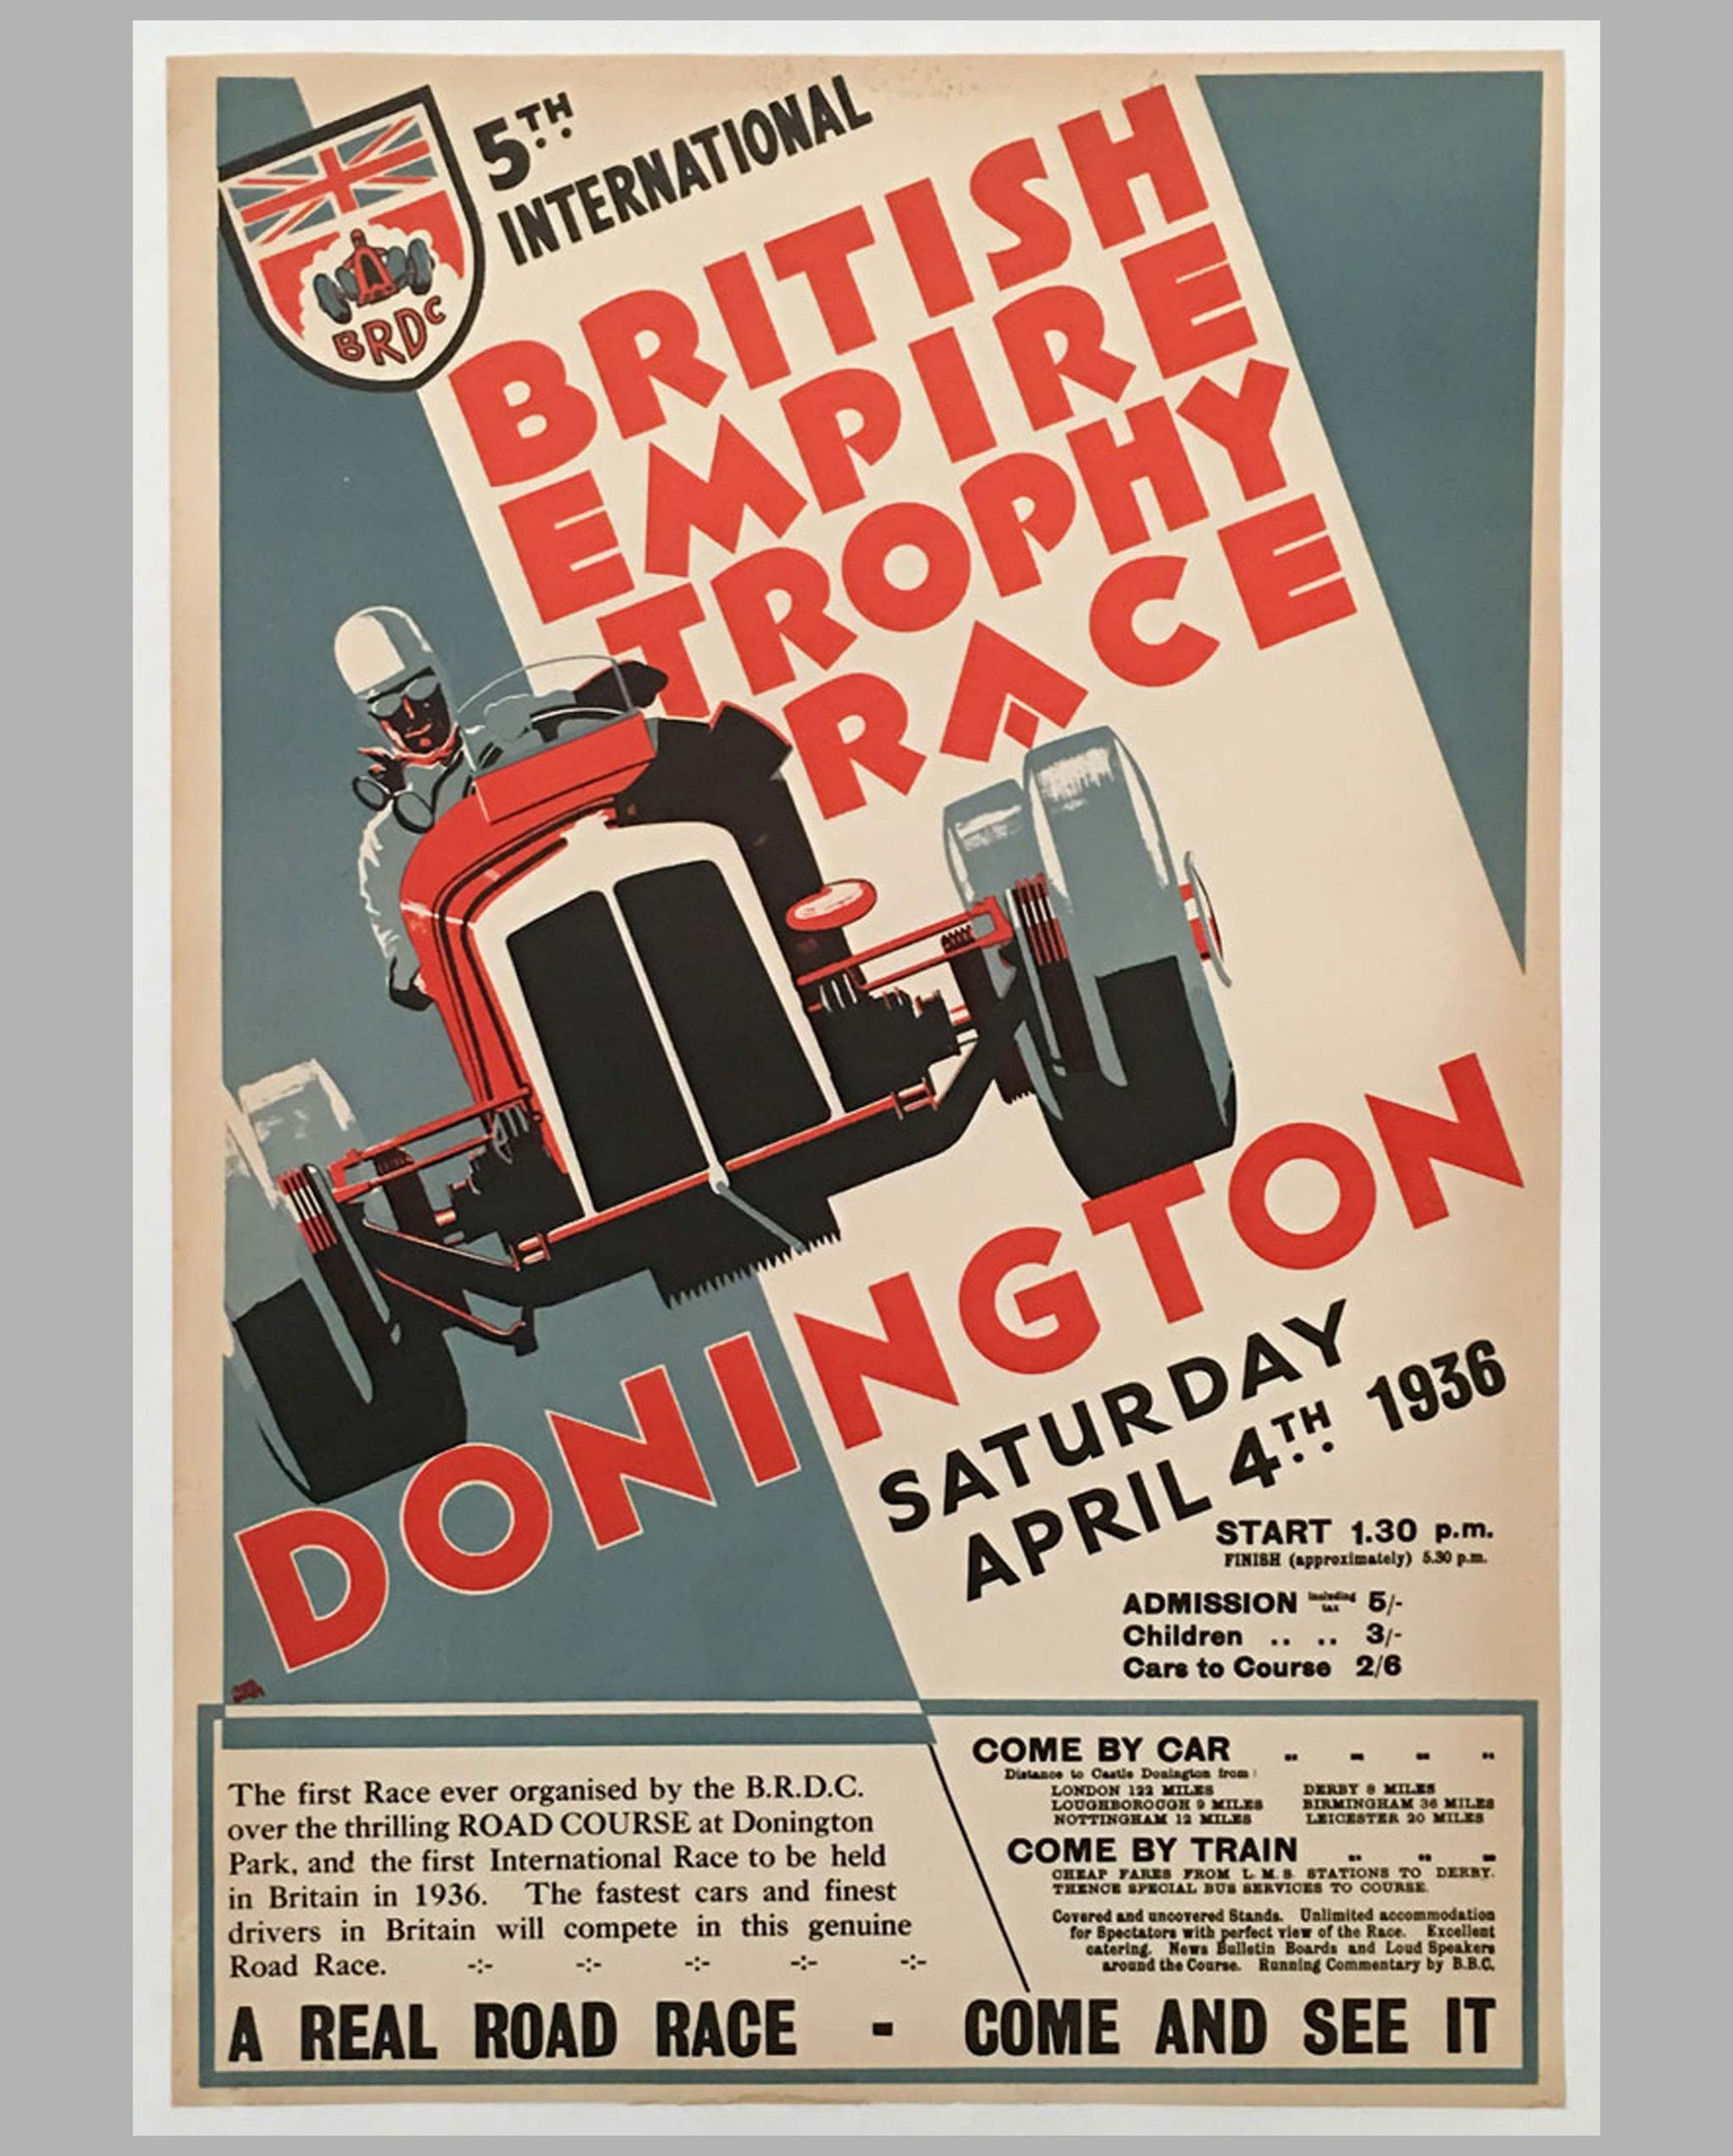 Fifth British Empire Trophy race at Donington 1936 original poster